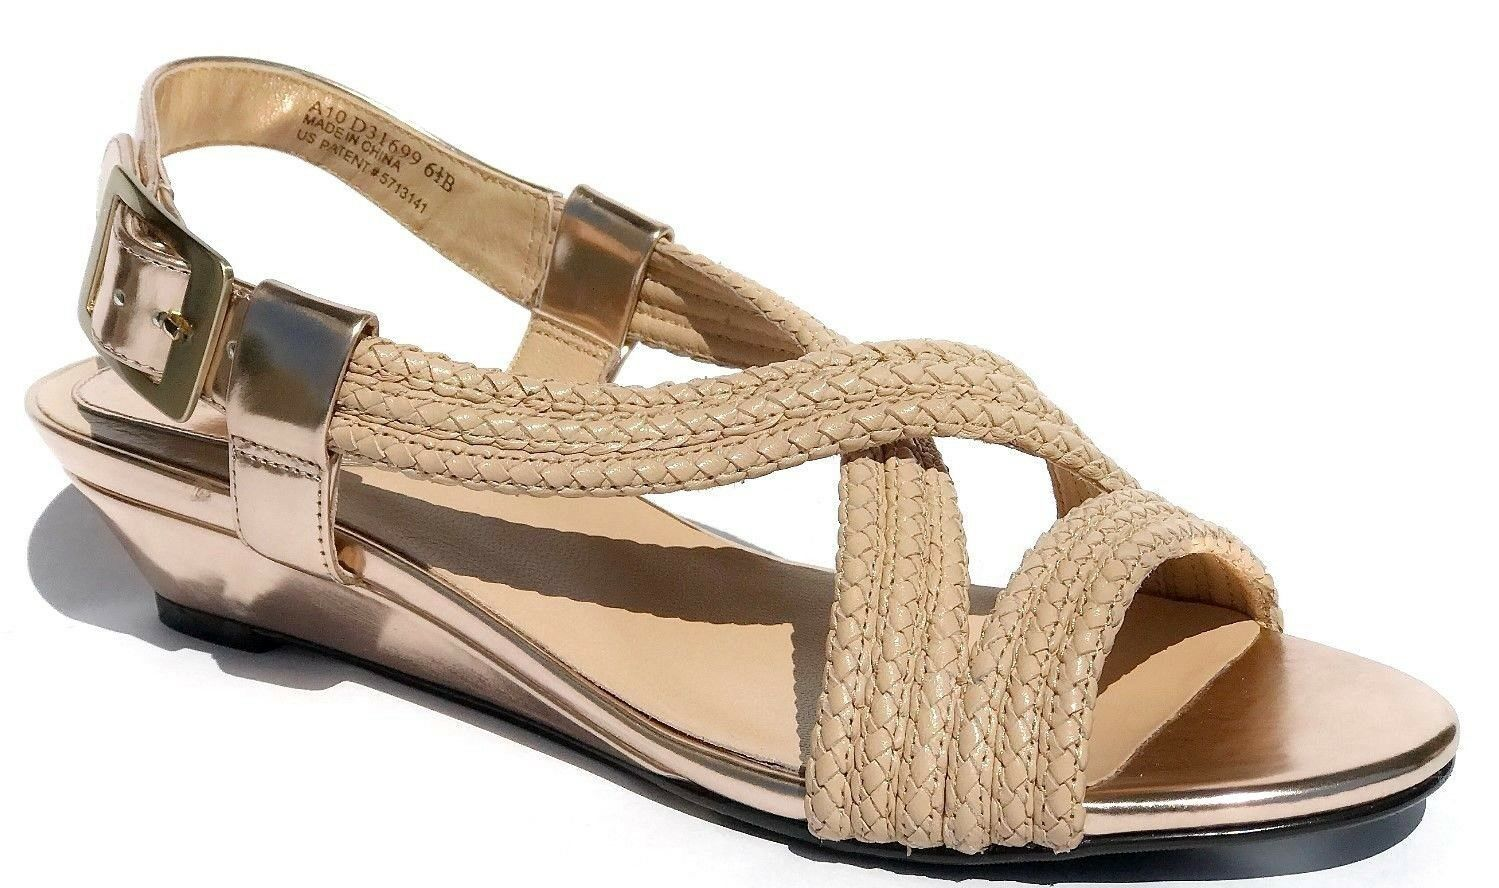 Cole Haan Womens Air Darleen Open Toe Braided Wedge shoes Beige 6.5 NEW IN BOX